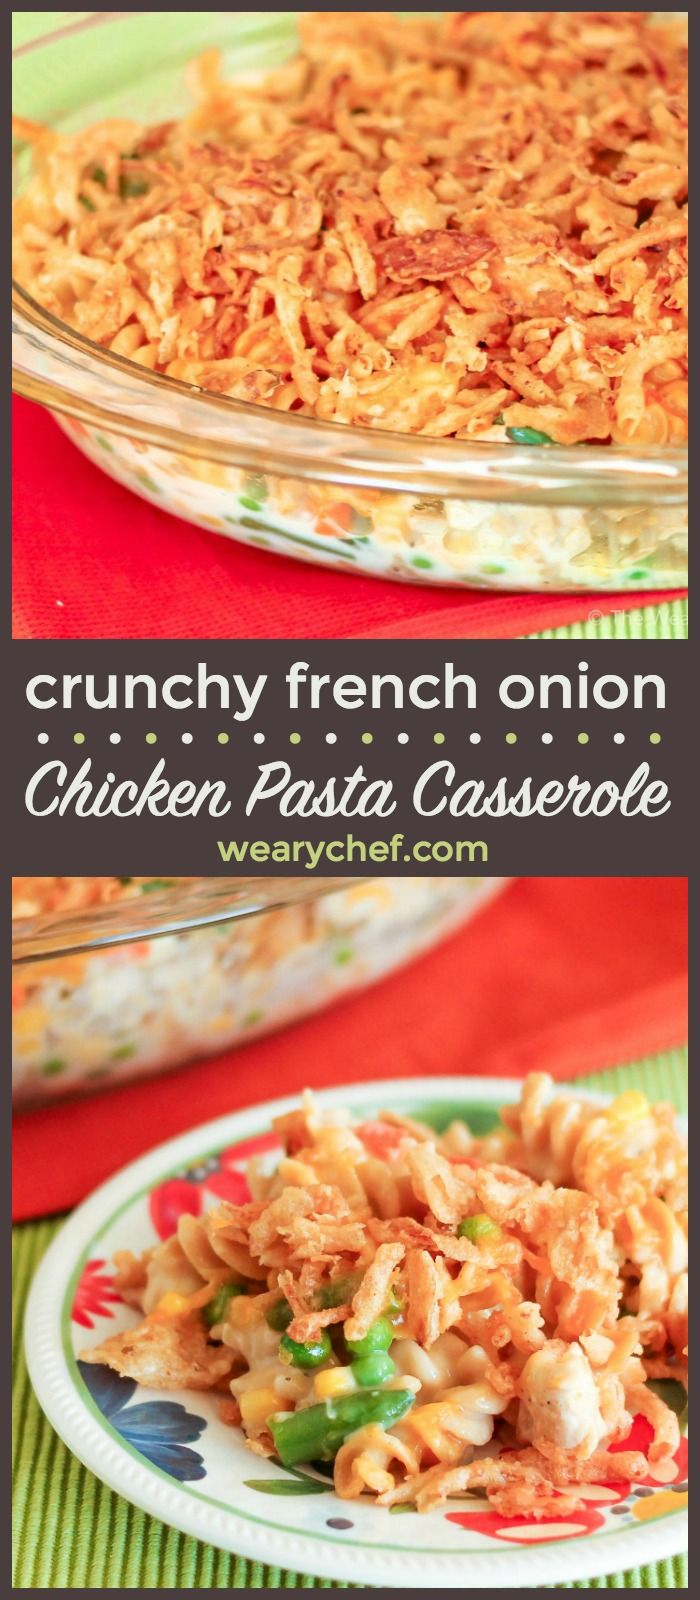 This quick and easy French Onion Chicken Casserole uses pantry staples and is a great recipe for leftover chicken or turkey. It's a perfect comfort food dinner recipe for busy nights!